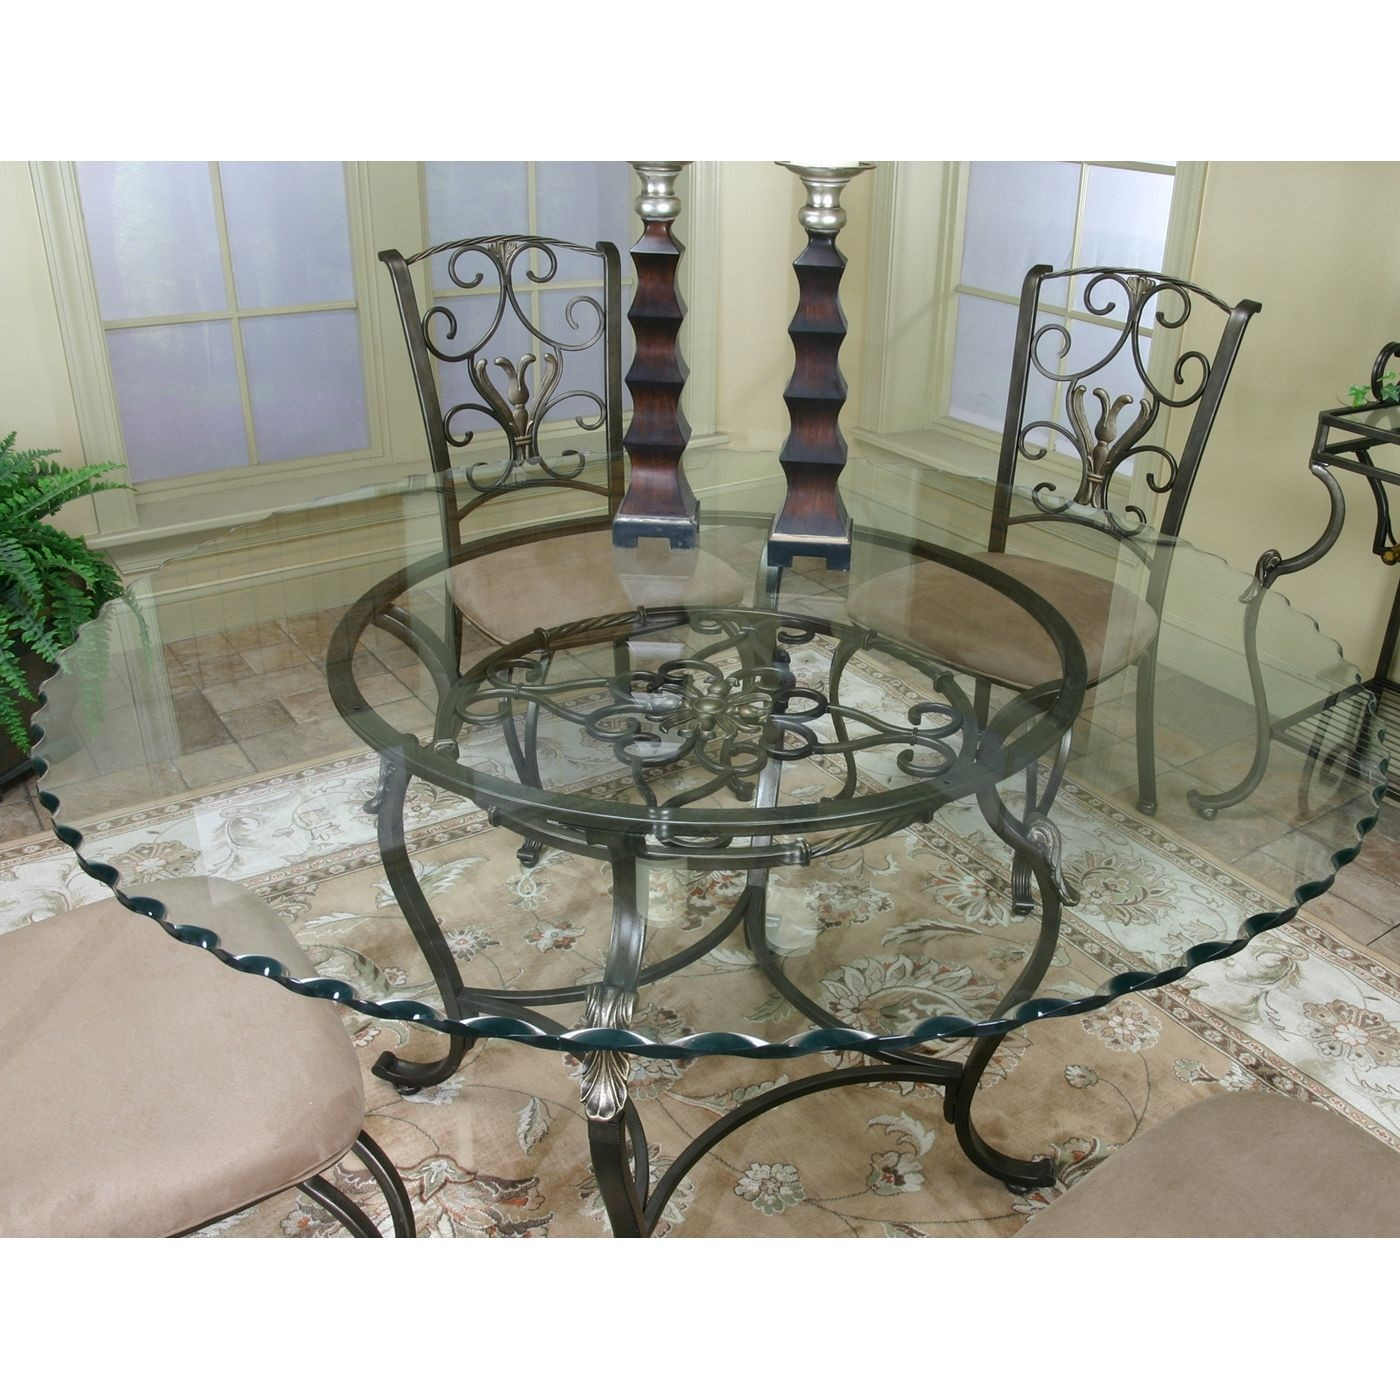 Glass top wrought iron dining table  sc 1 st  Foter & Glass Top Wrought Iron Dining Table - Foter